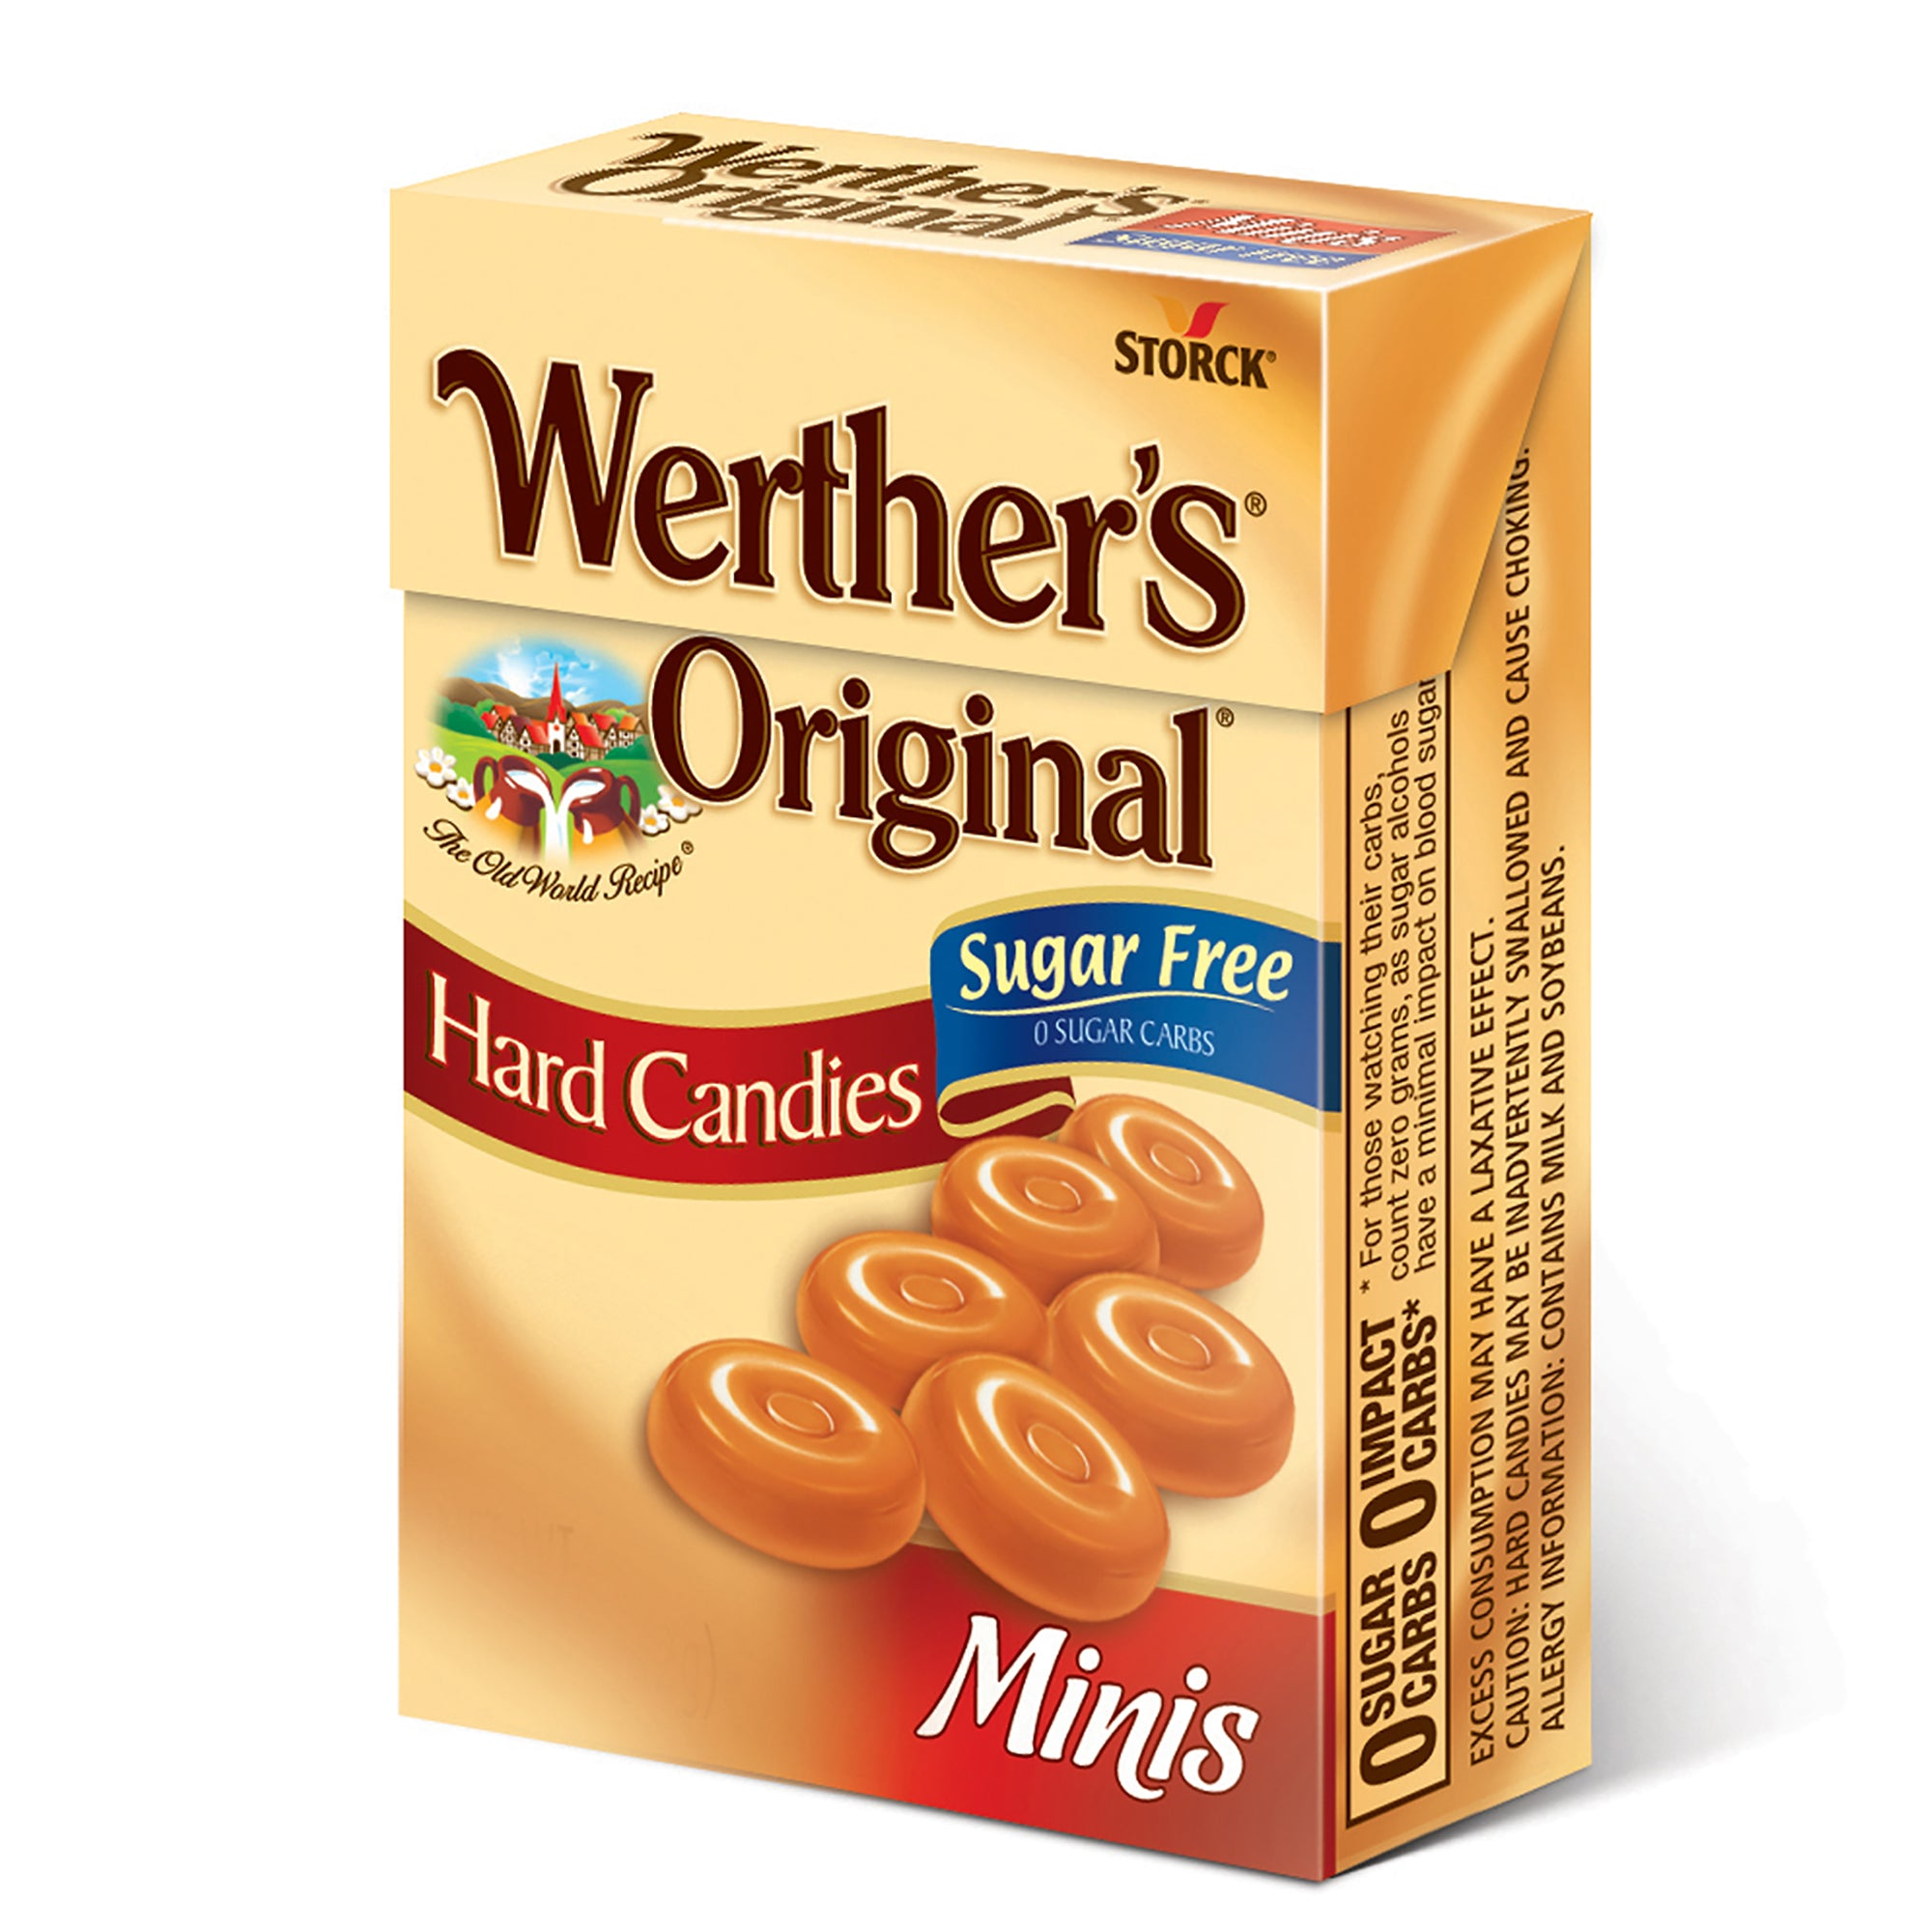 Werther's Original Mini Sugar Free Hard Candies, 1.48 oz